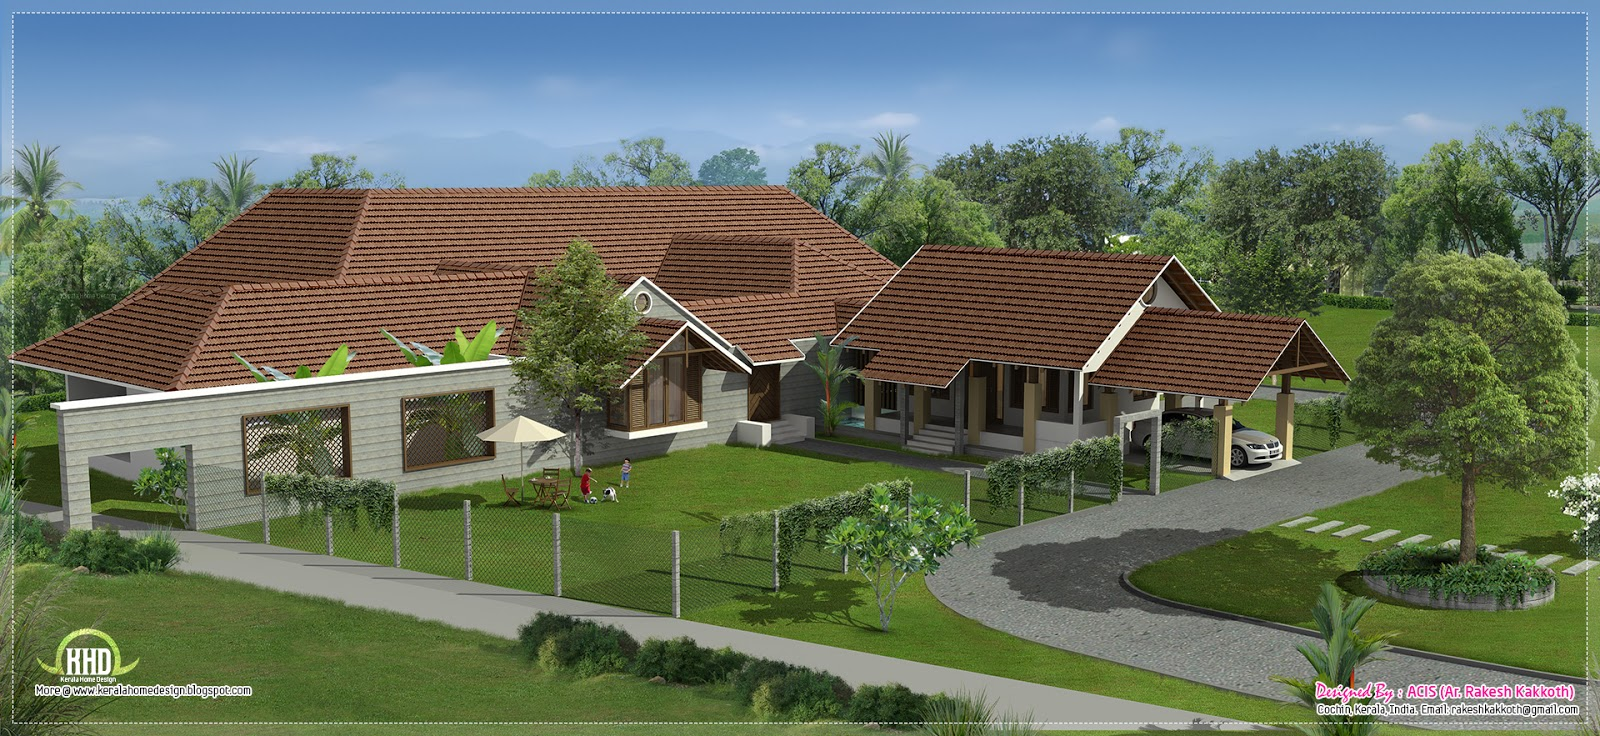 Luxury bungalow exterior design home kerala plans for Bangalo design